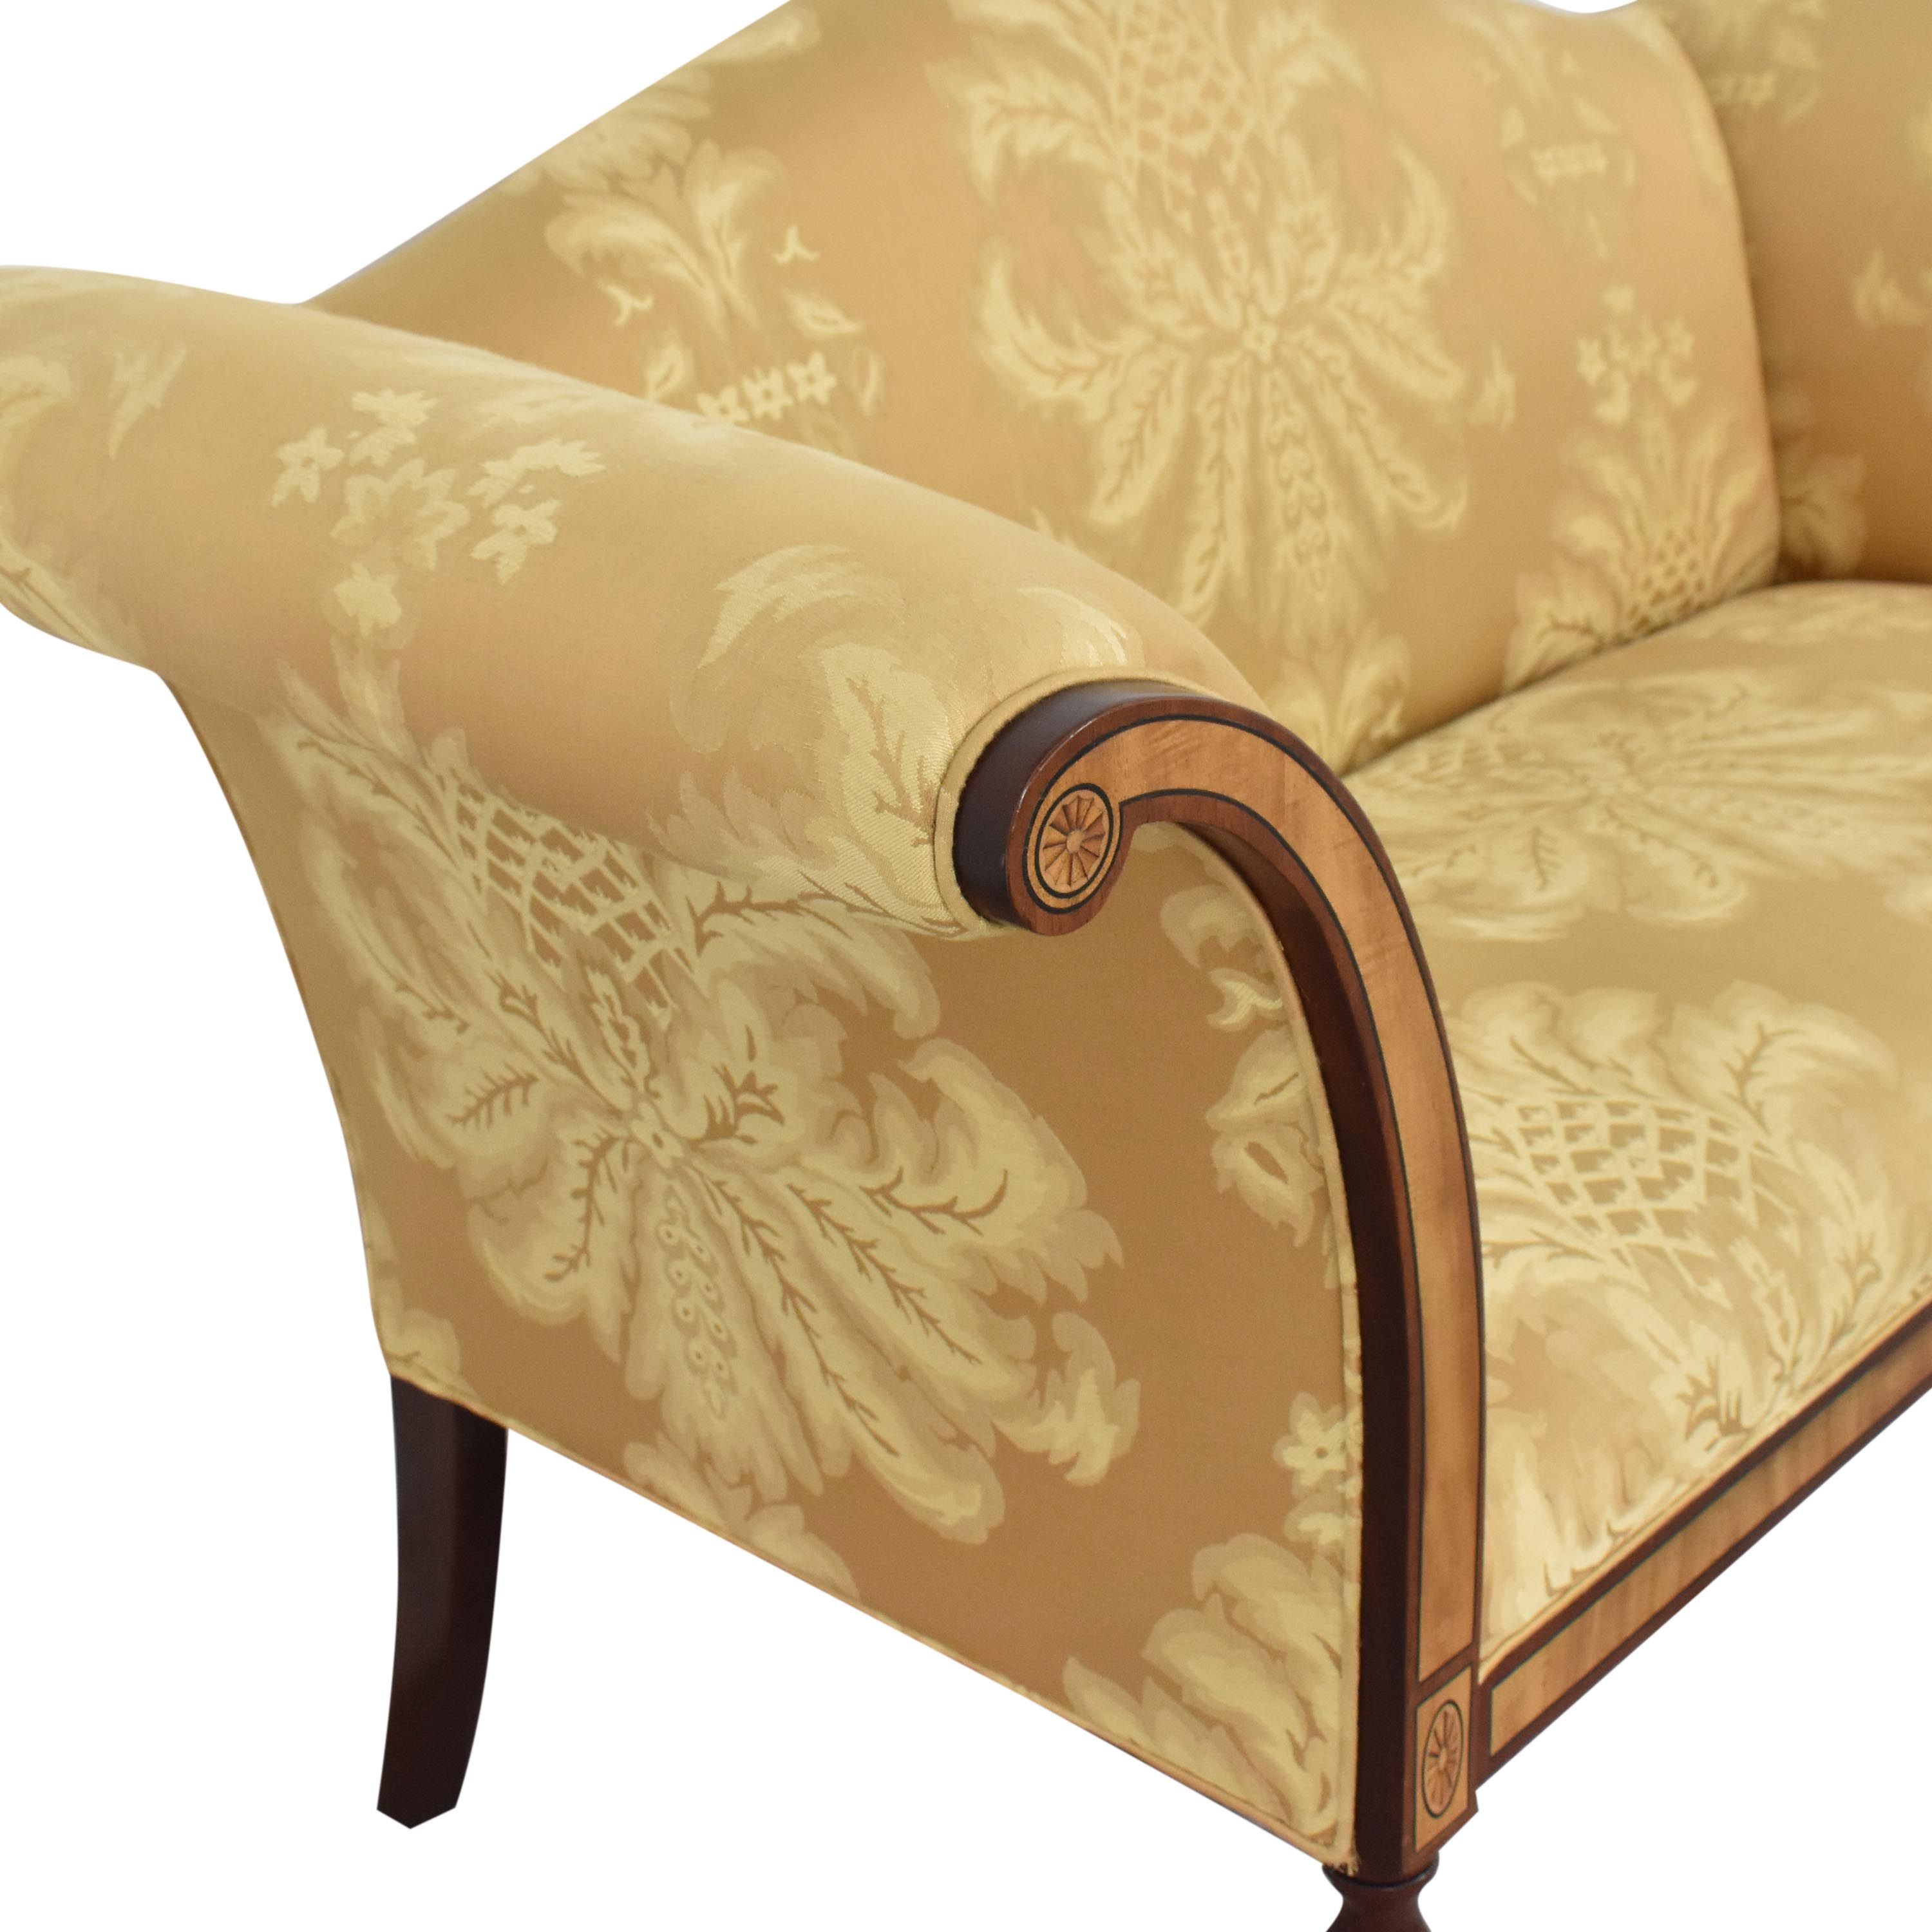 Southwood Loveseat with Pillows / Loveseats